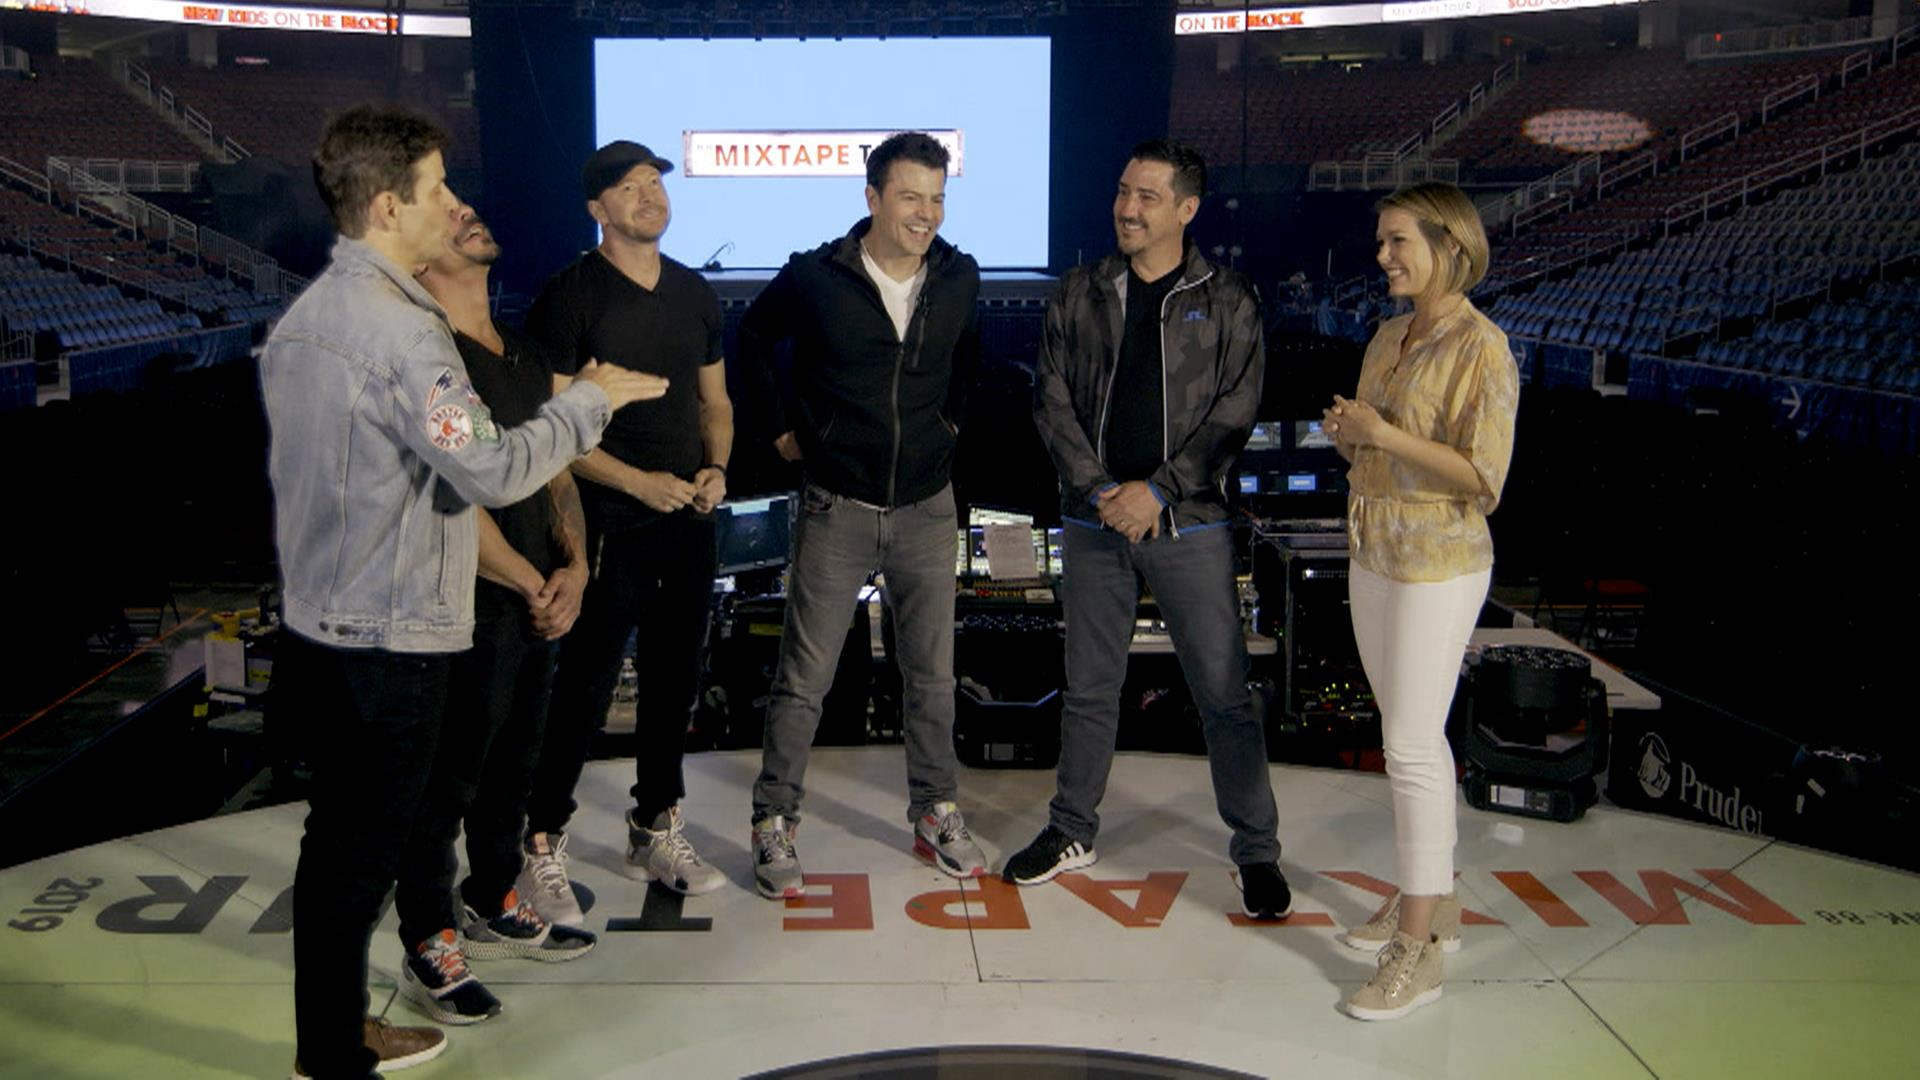 NKOTB give behind-the-scenes look at 'Mixtape Tour'